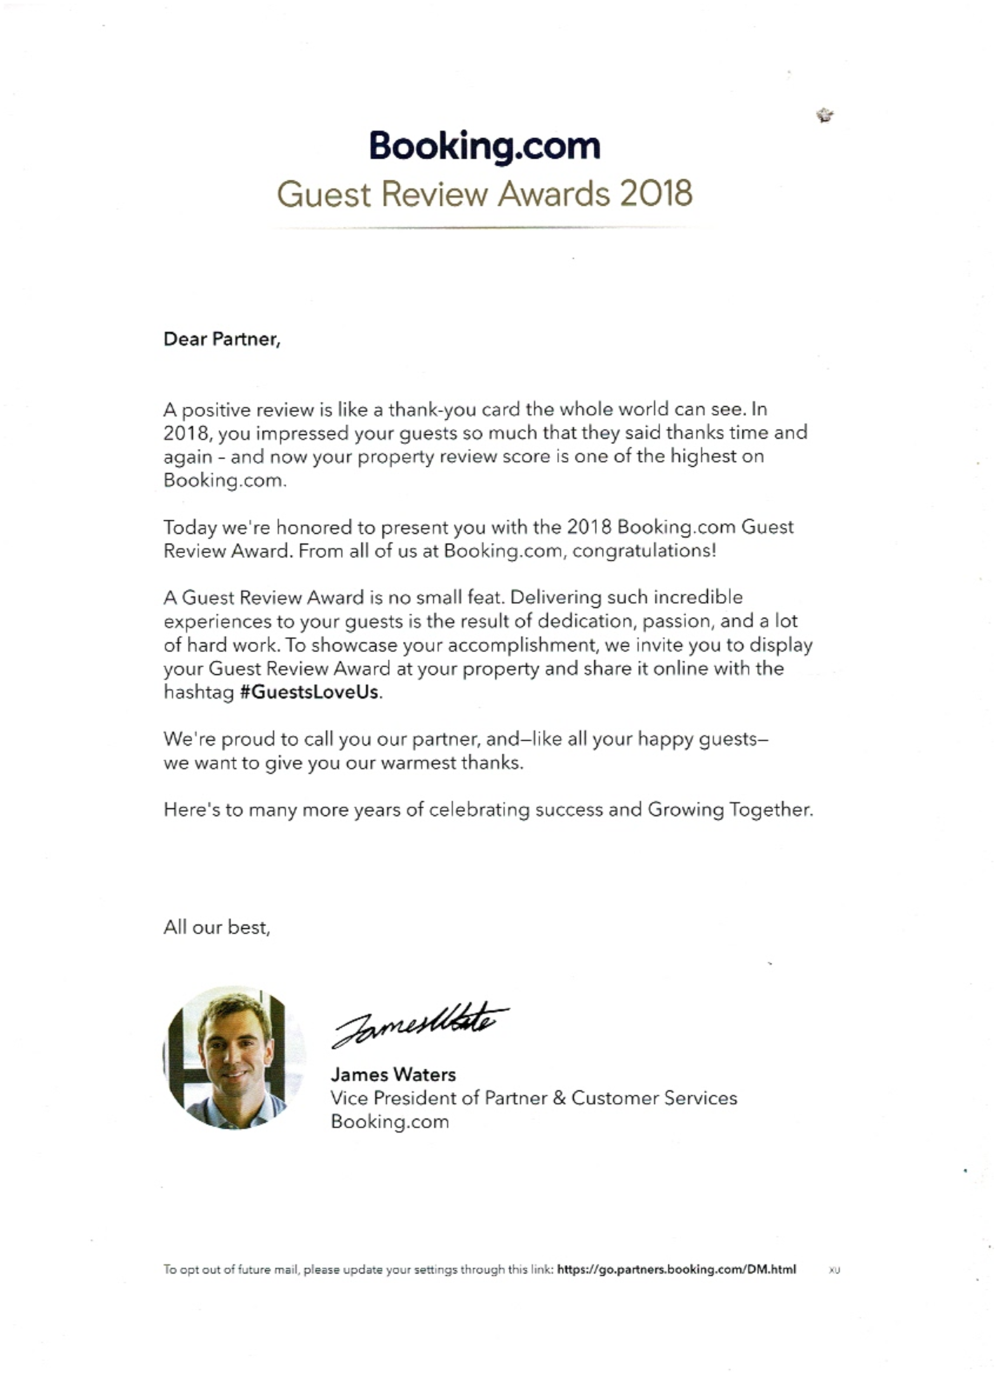 A copy of the award letter from Booking.com